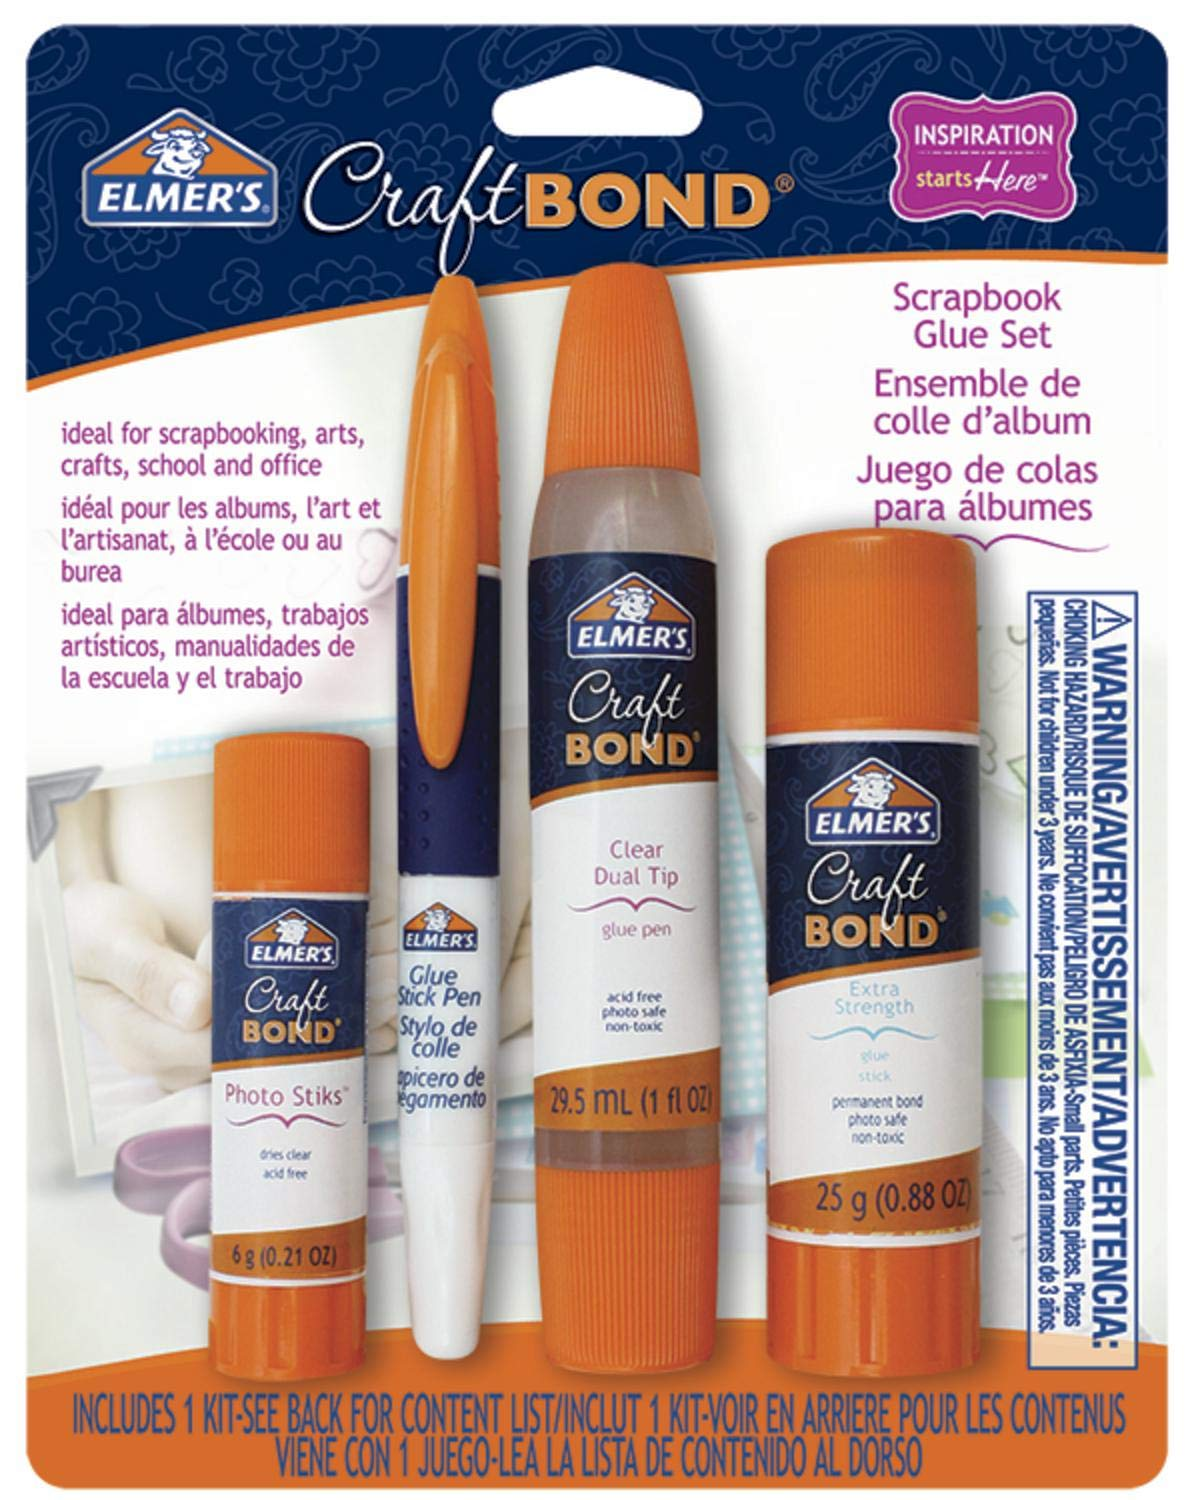 Elmer's CraftBond Scrapbook Glue, 4 Piece Set, Natural